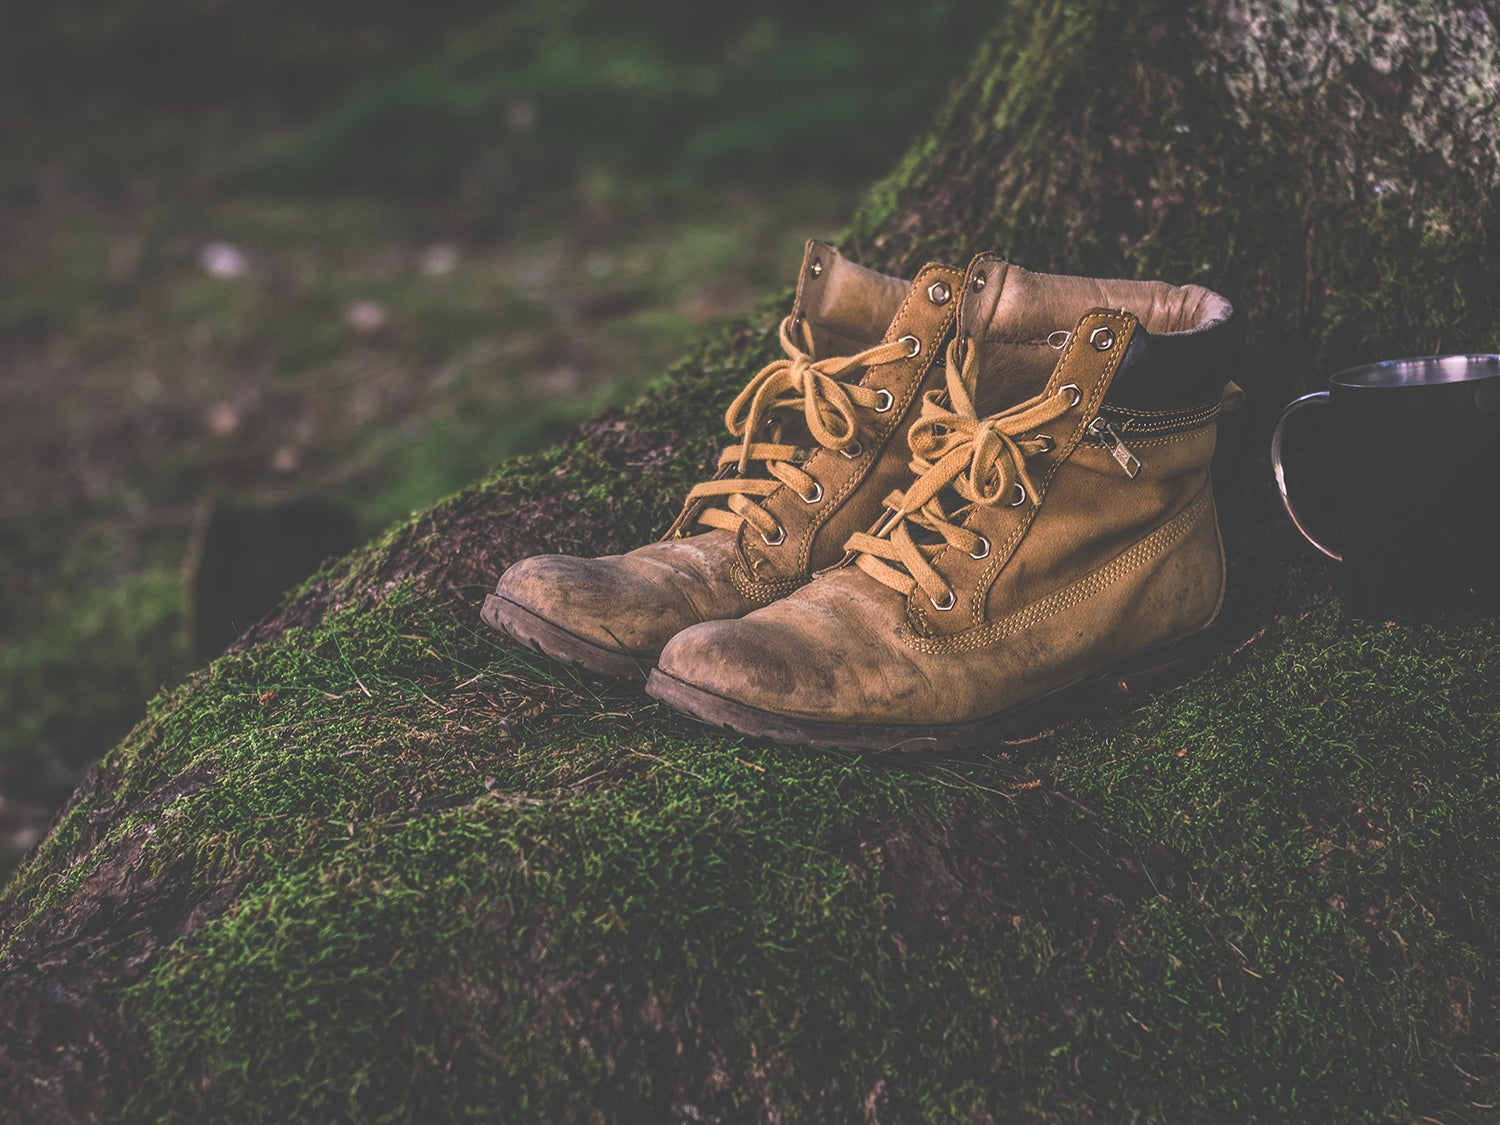 A pair of boots sitting outside